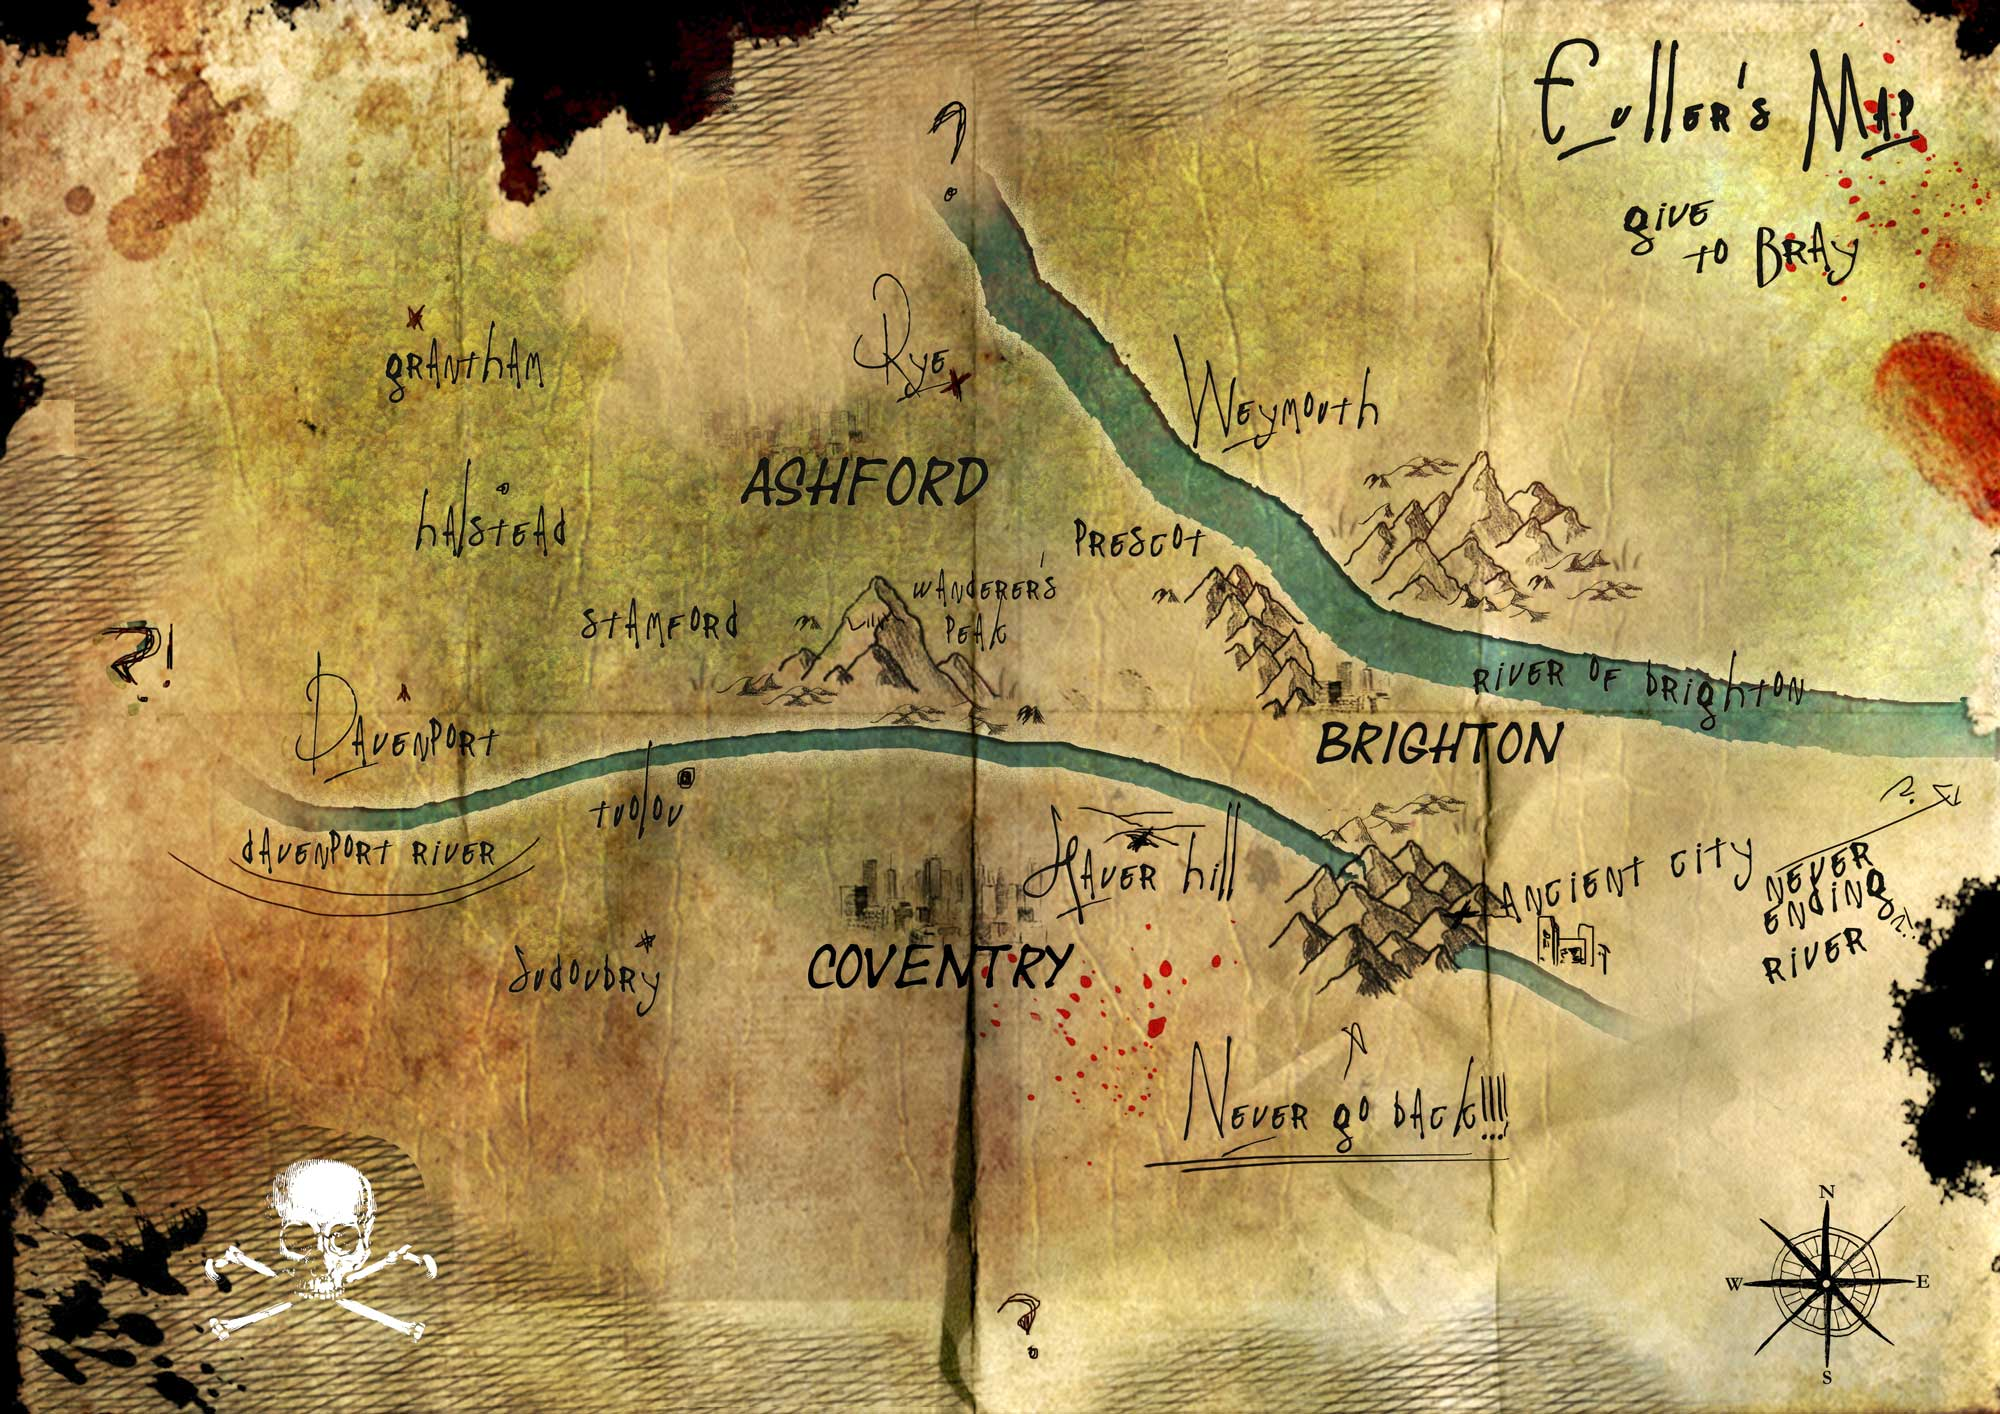 Bray's map from The Last Escape